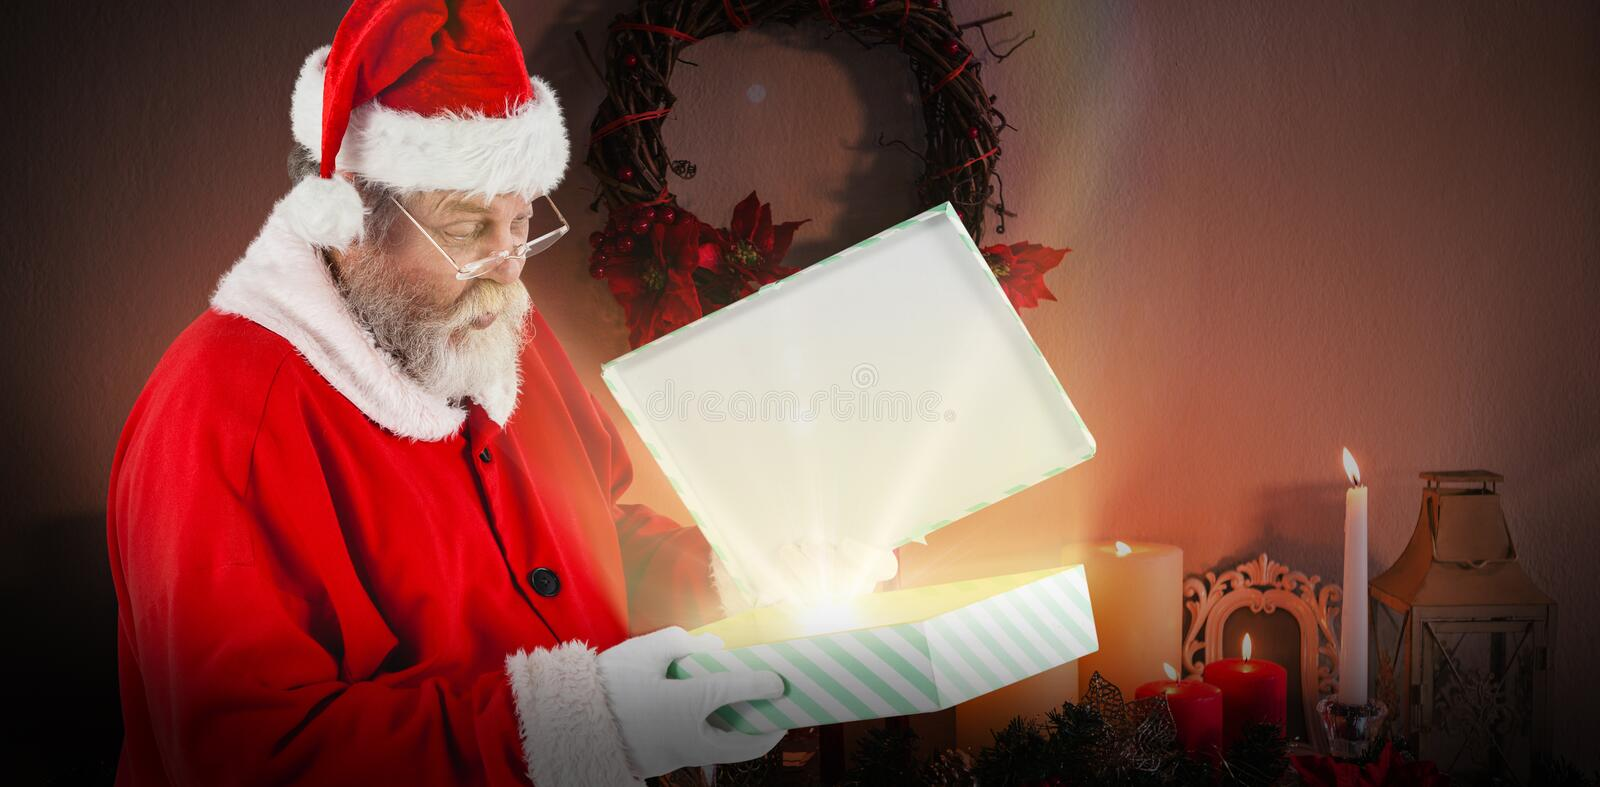 Composite image of santa claus looking at open gift box. Santa Claus looking at open gift box against candles and christmas decorations arranged on fireplace stock image